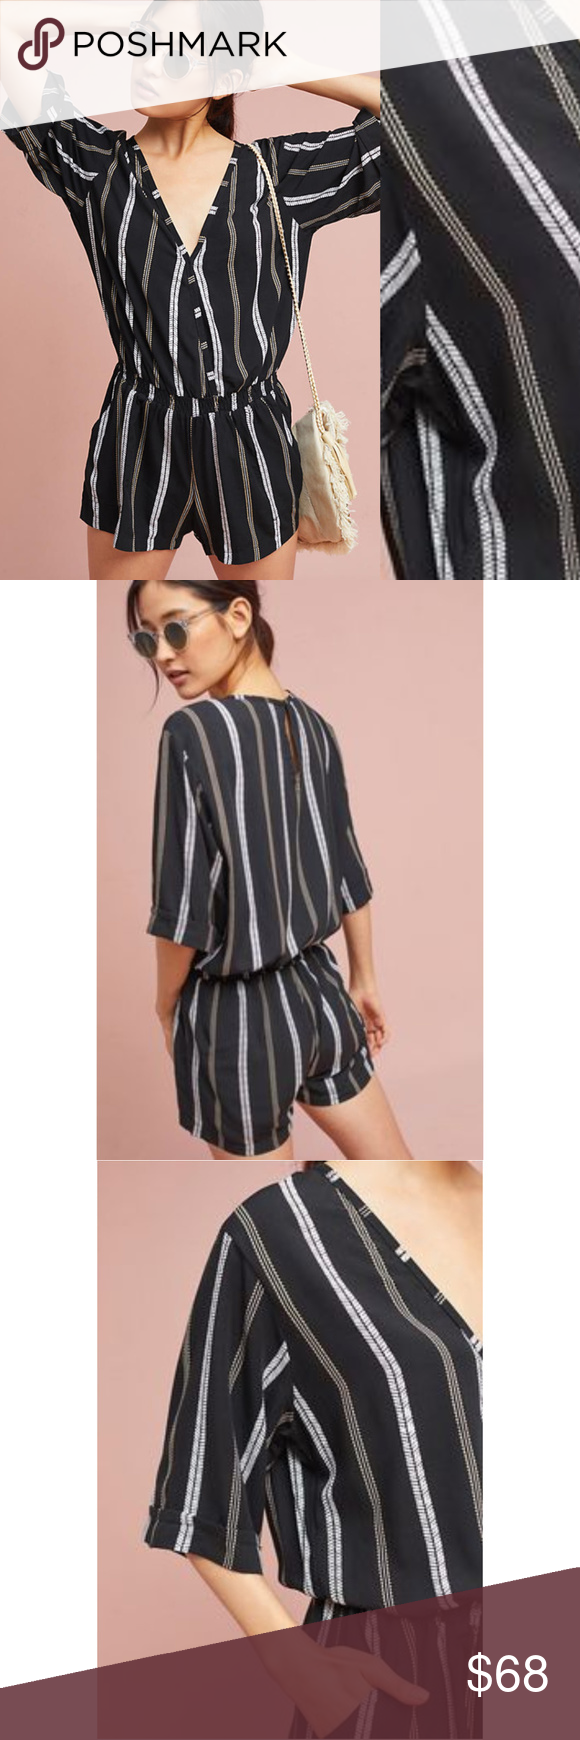 187c77eb156 NWT ANTHROPOLOGIE Beachgold Ancona Striped Romper Brand new with tags NWT  ANTHROPOLOGIE Beachgold Ancona Striped Romper